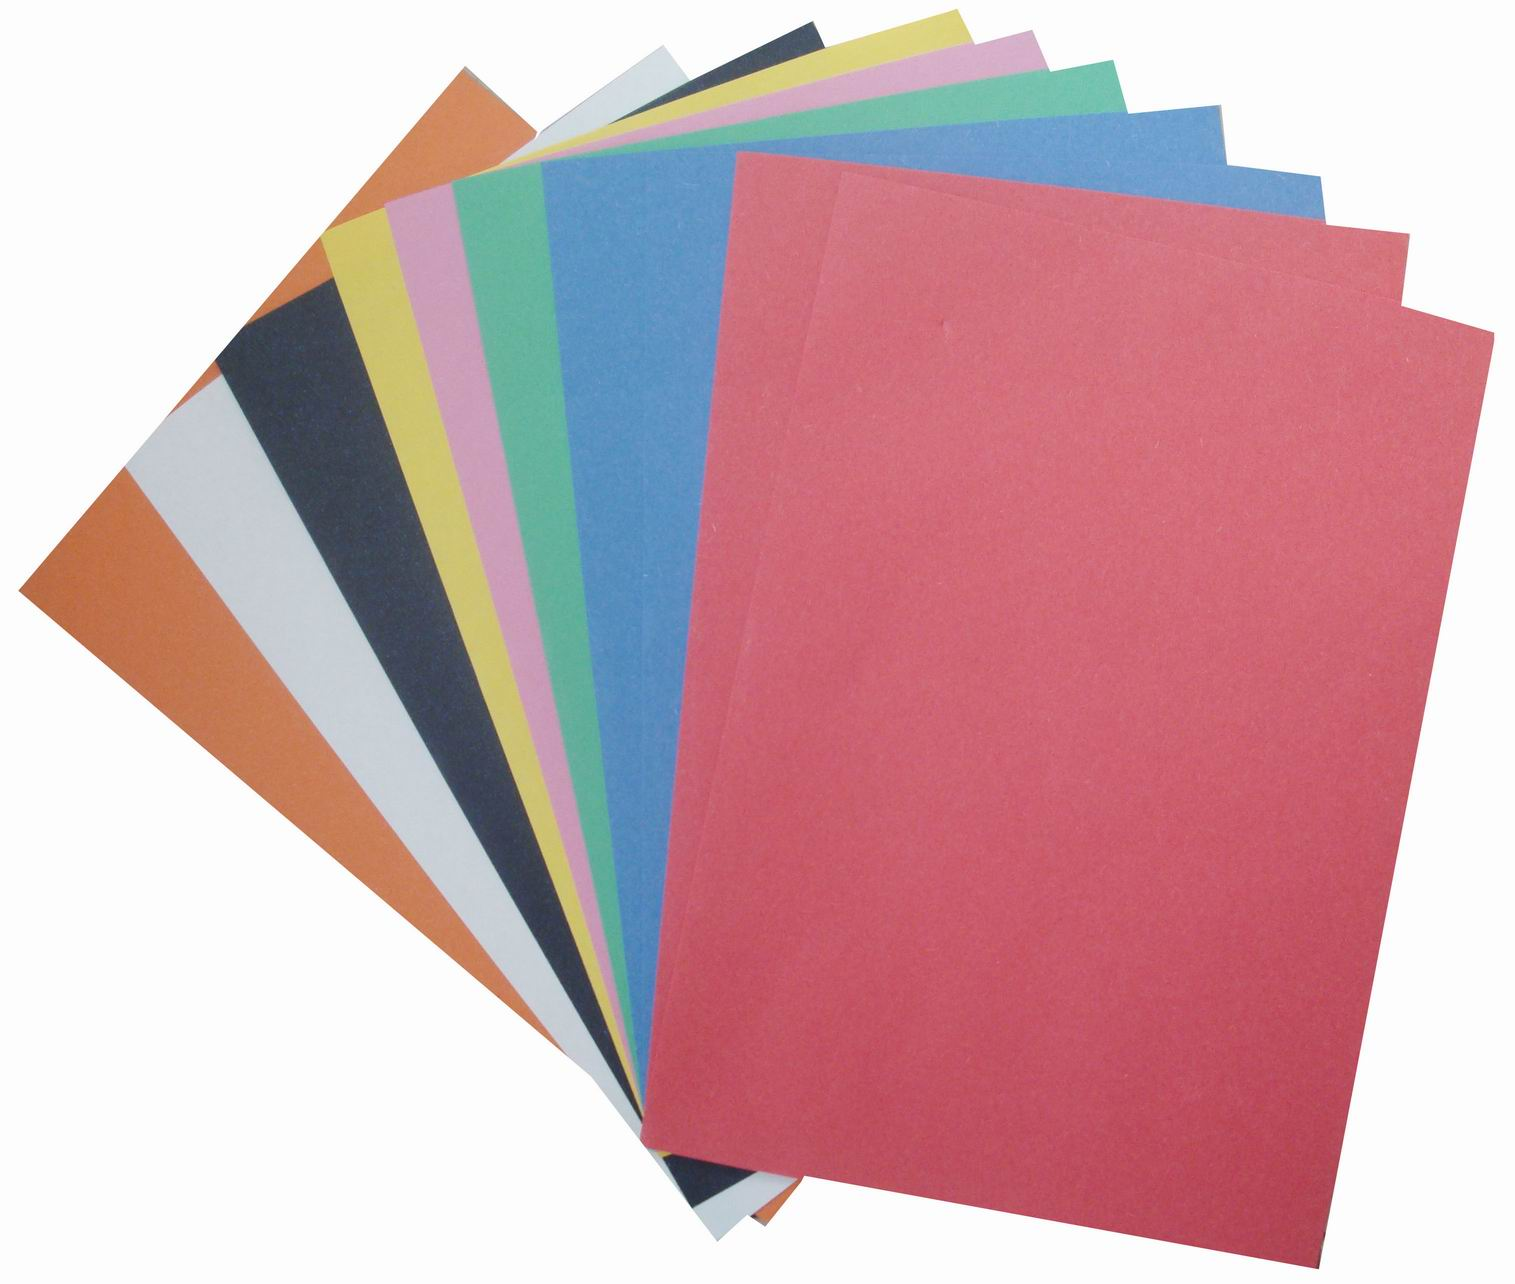 Construction Paper 8 colors